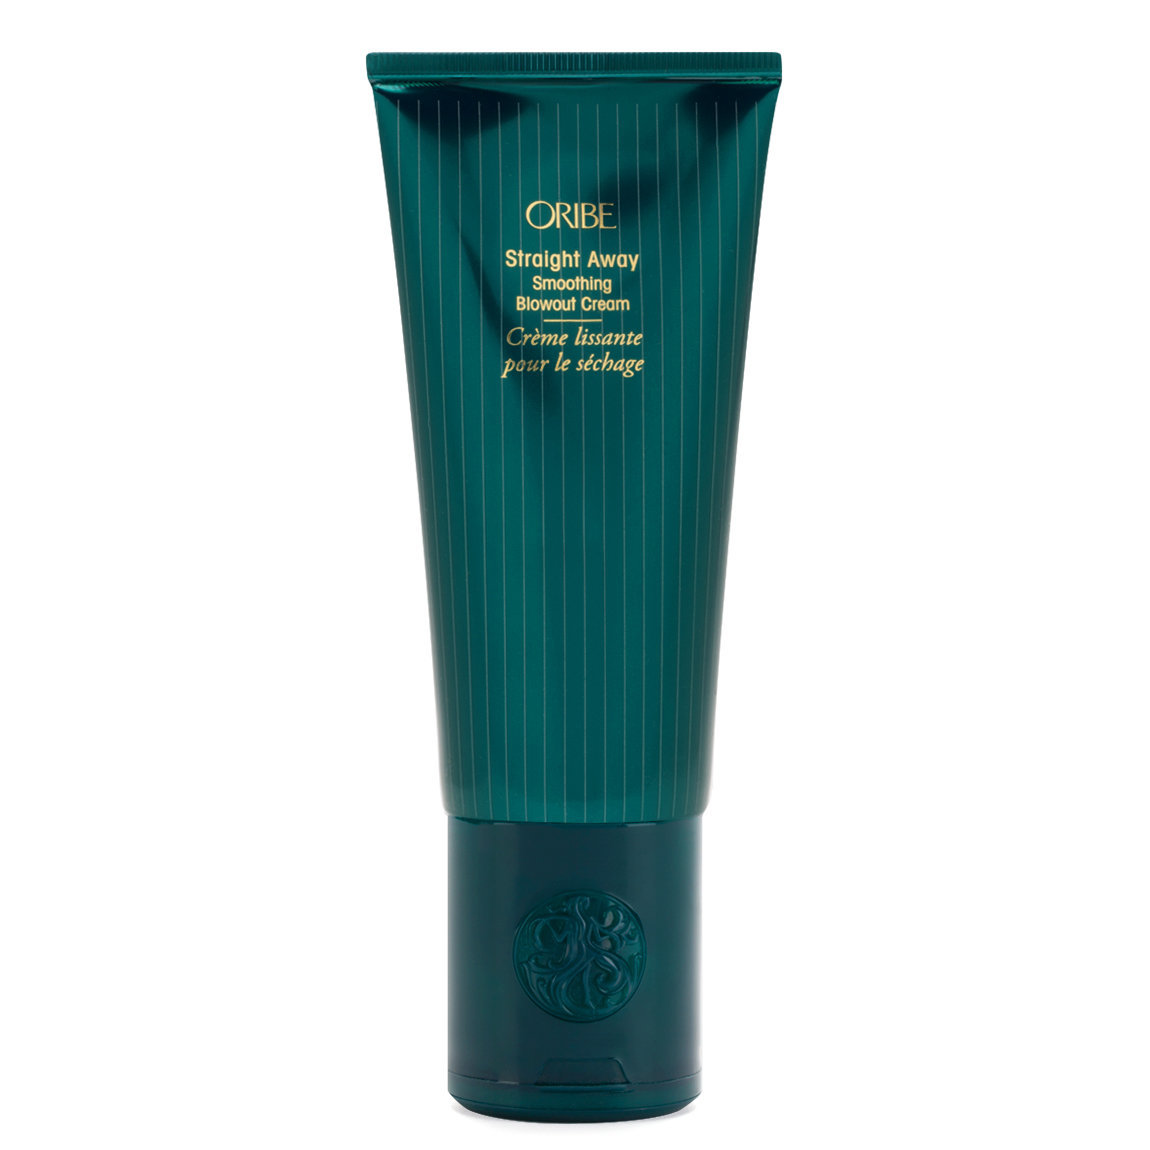 Oribe Straight Away Smoothing Blowout Cream product smear.